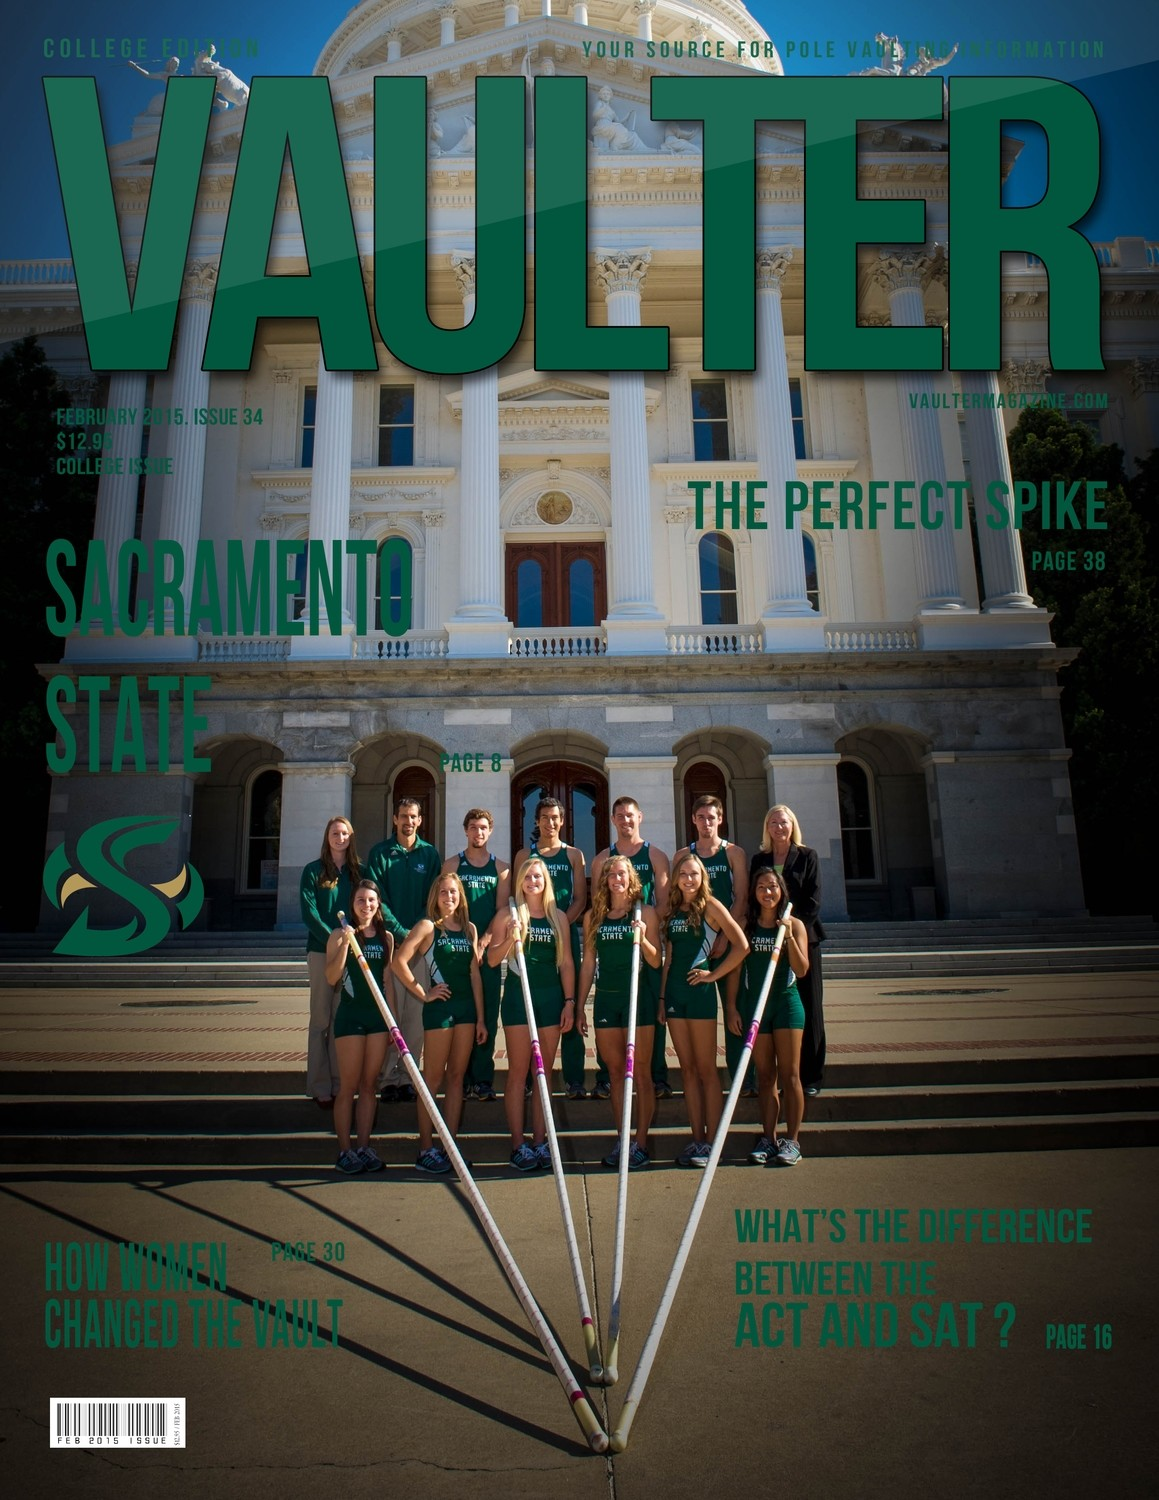 """12"""" x 18"""" Poster of the Sacramento State University Cover of VAULTER"""